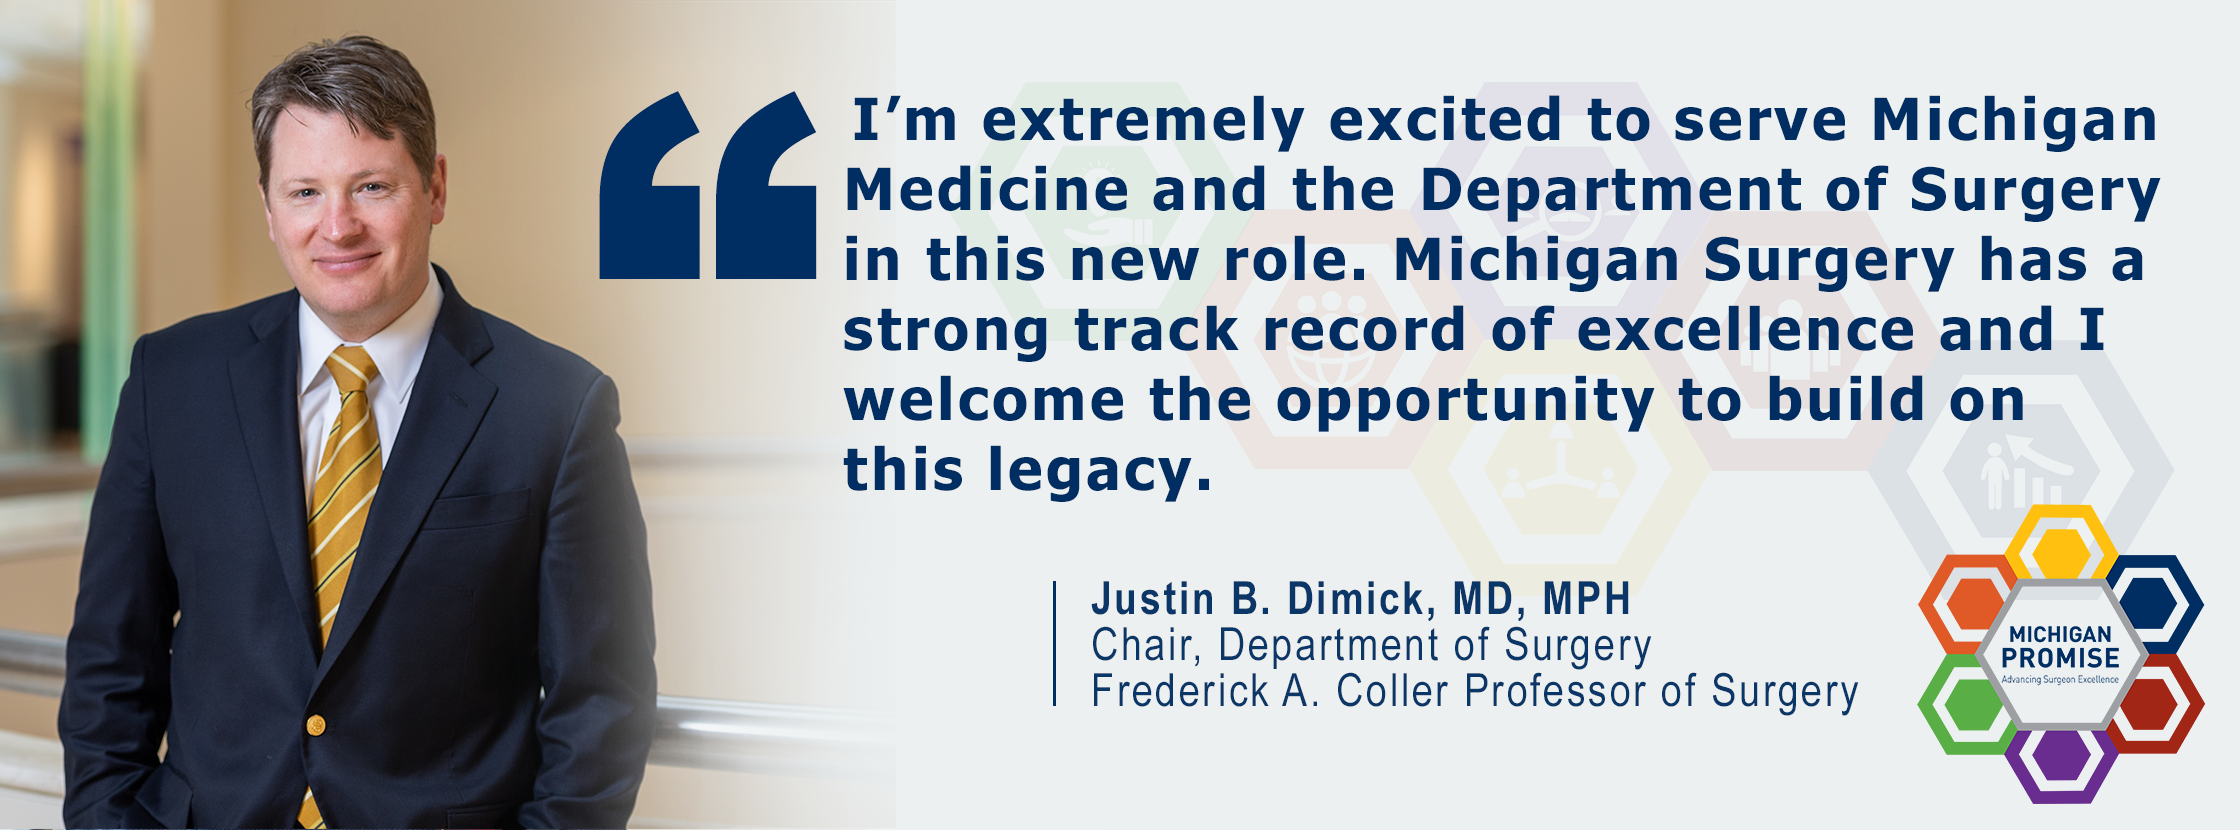 """I'm extremely excited to serve Michigan Medicine and the Department of Surgery in this new role. Michigan Surgery has a strong track record of excellence and I welcome the opportunity to build on this legacy."" Justin B. Dimick, MD, MPH"